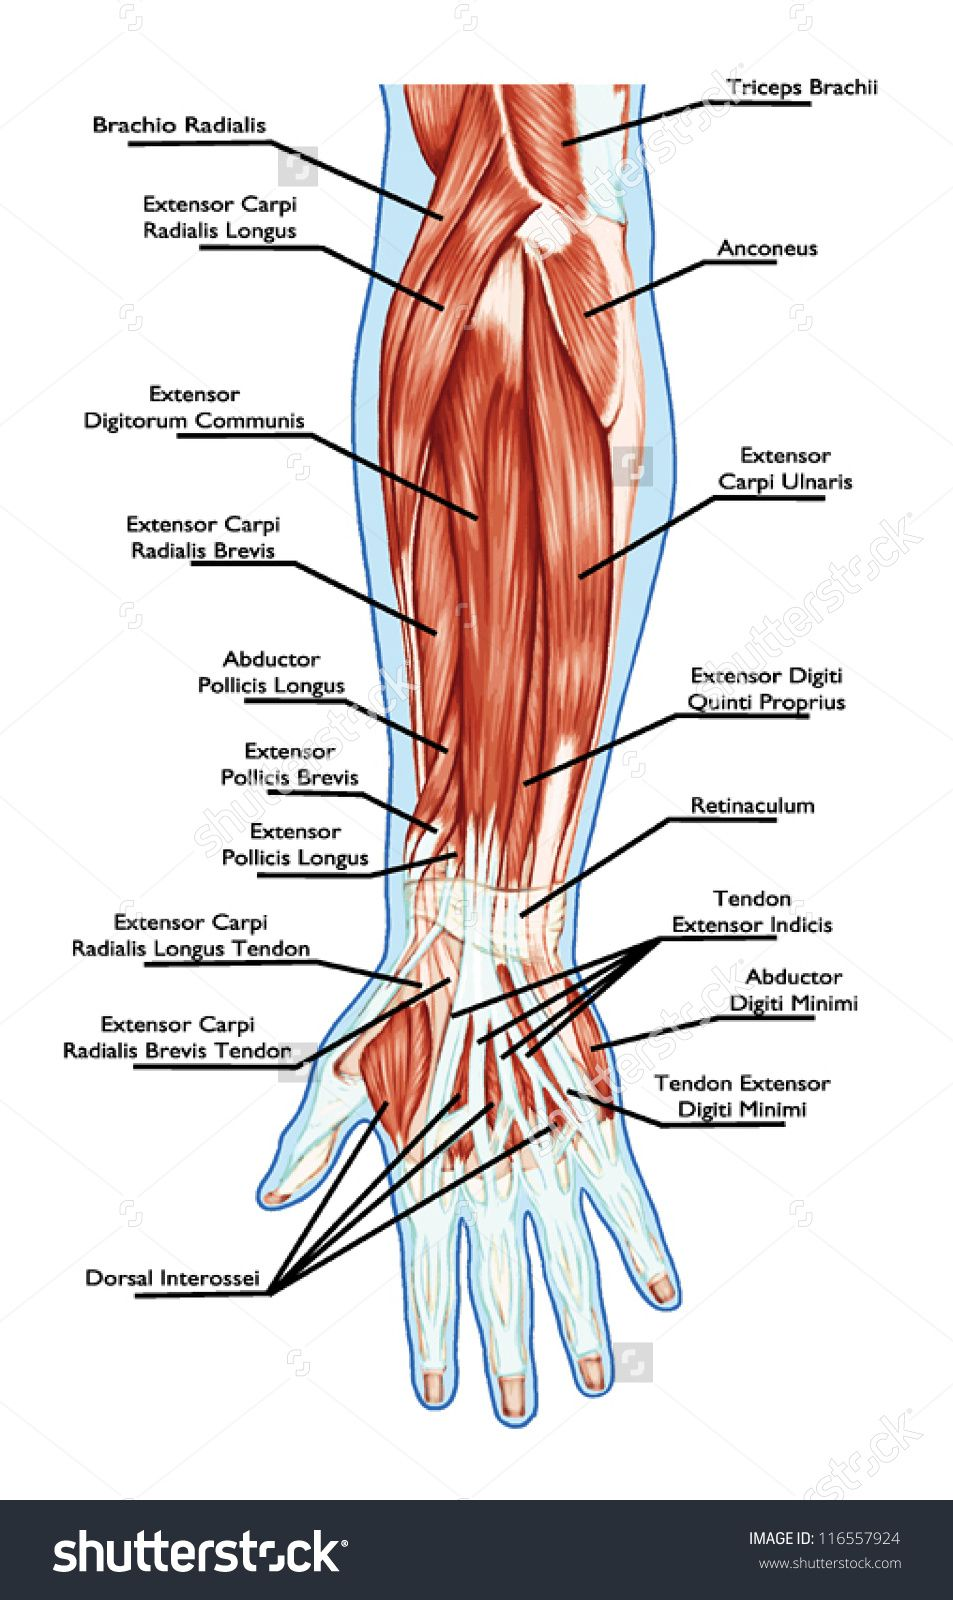 anatomy of muscular system hand forearm palm muscle diagram arm tendons ligaments diagram arm tendons ligaments [ 953 x 1600 Pixel ]